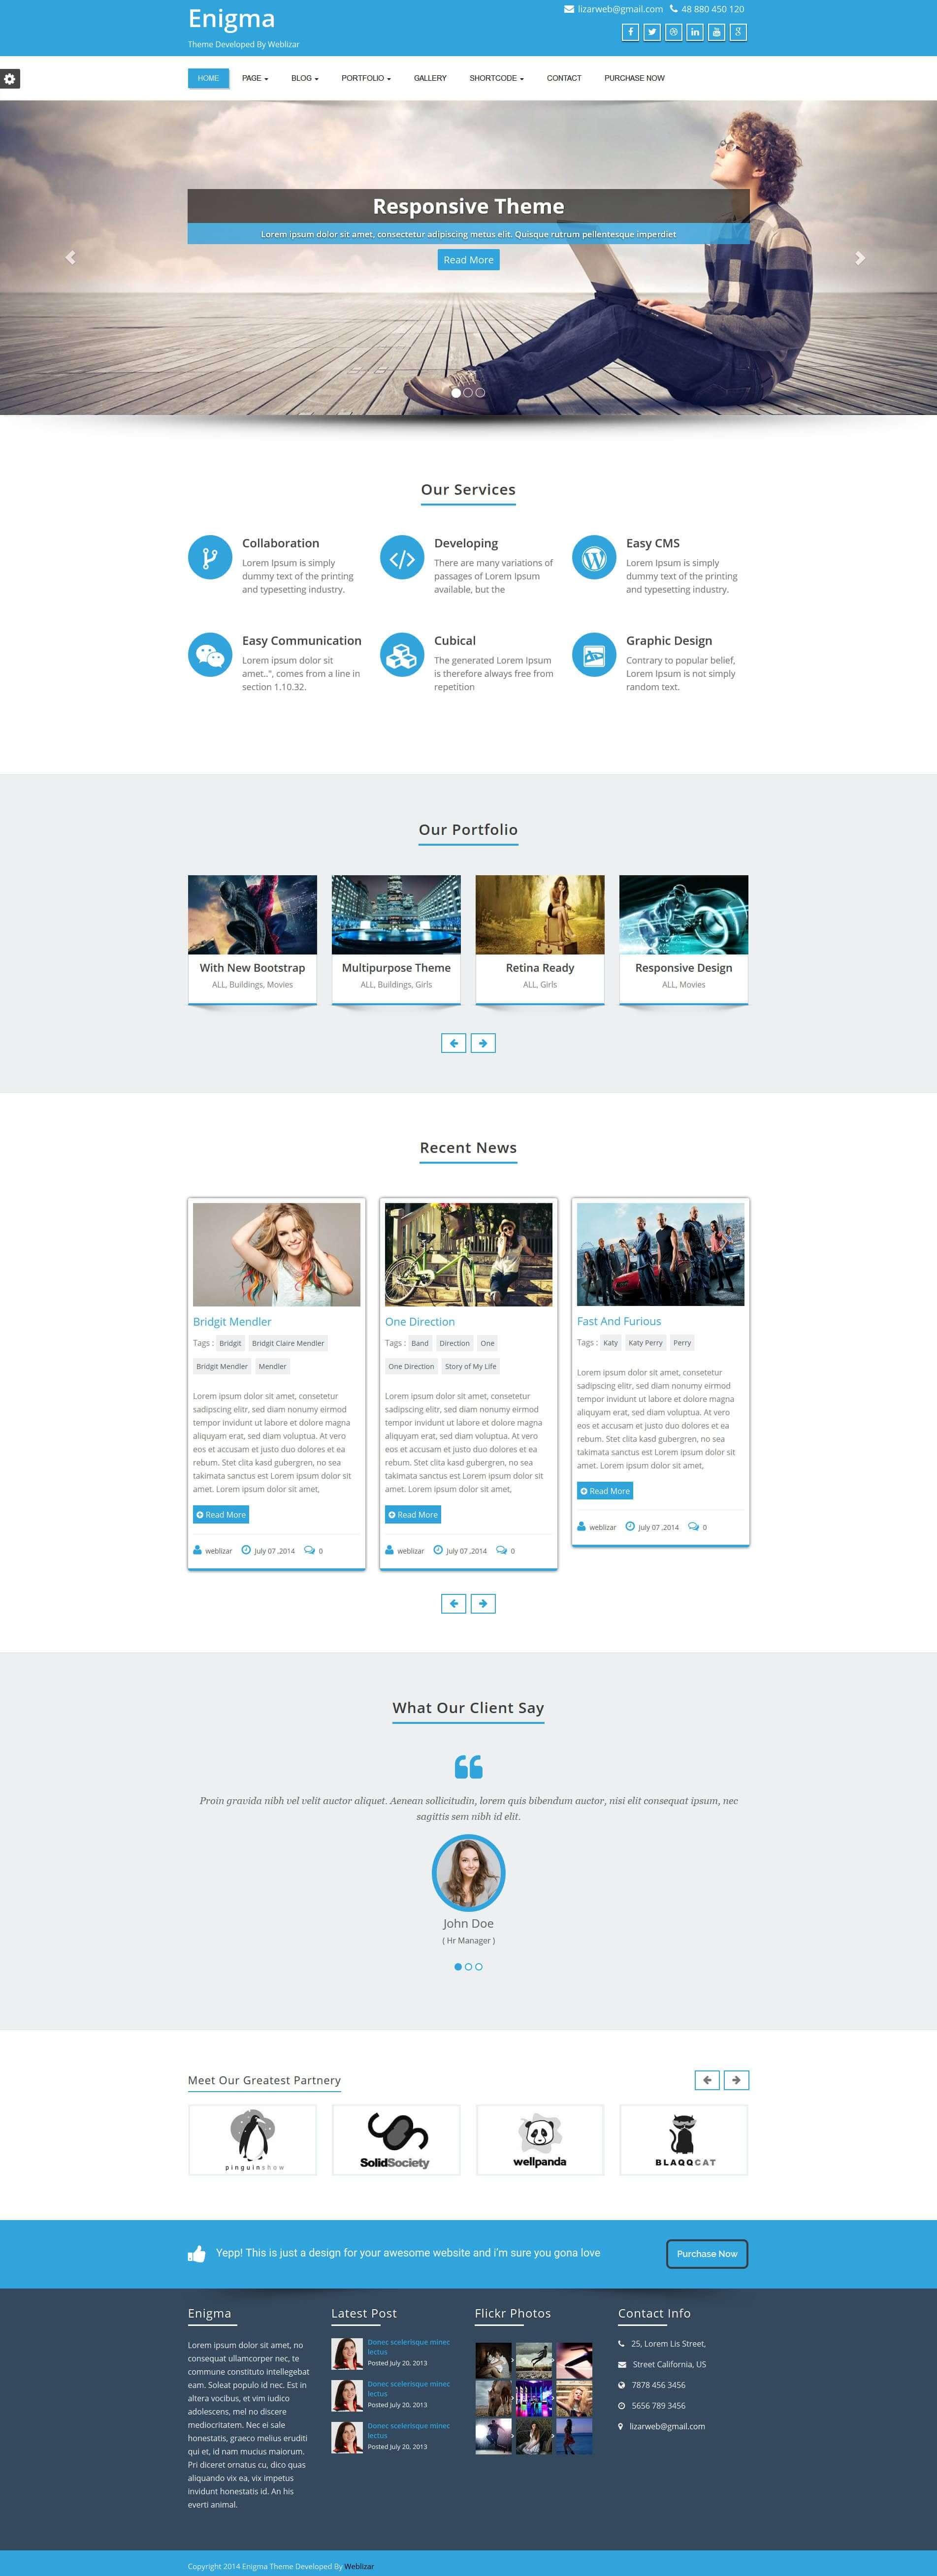 Weblizar Wordpress Free Premium Themes Plugins Html Templates